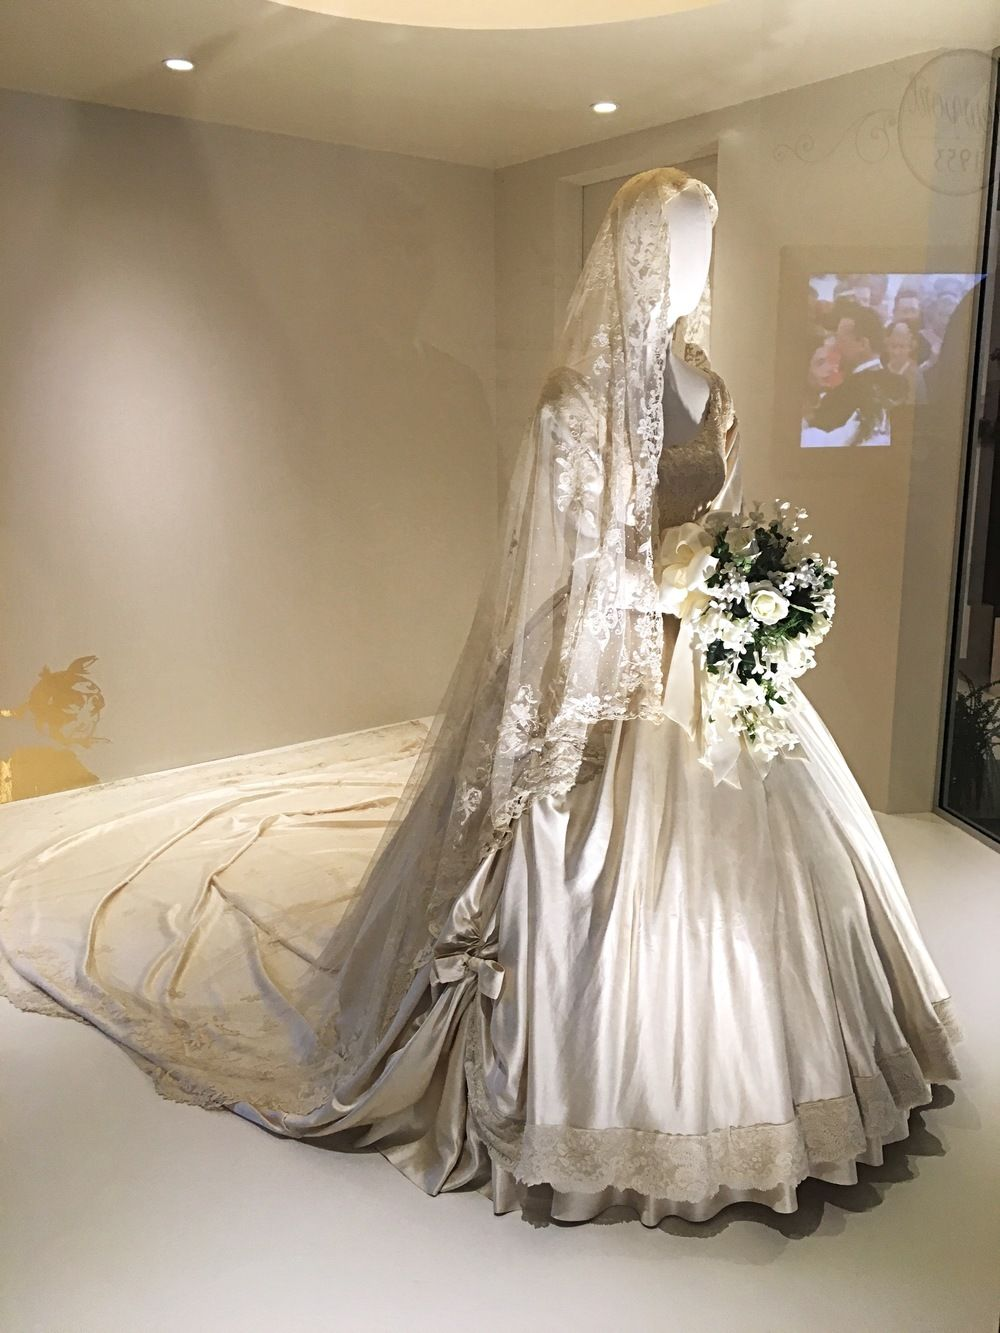 May 2016 jackie kennedys wedding veil on display at biltmore may 2016 jackie kennedys wedding veil on display at biltmore estate in asheville north junglespirit Image collections